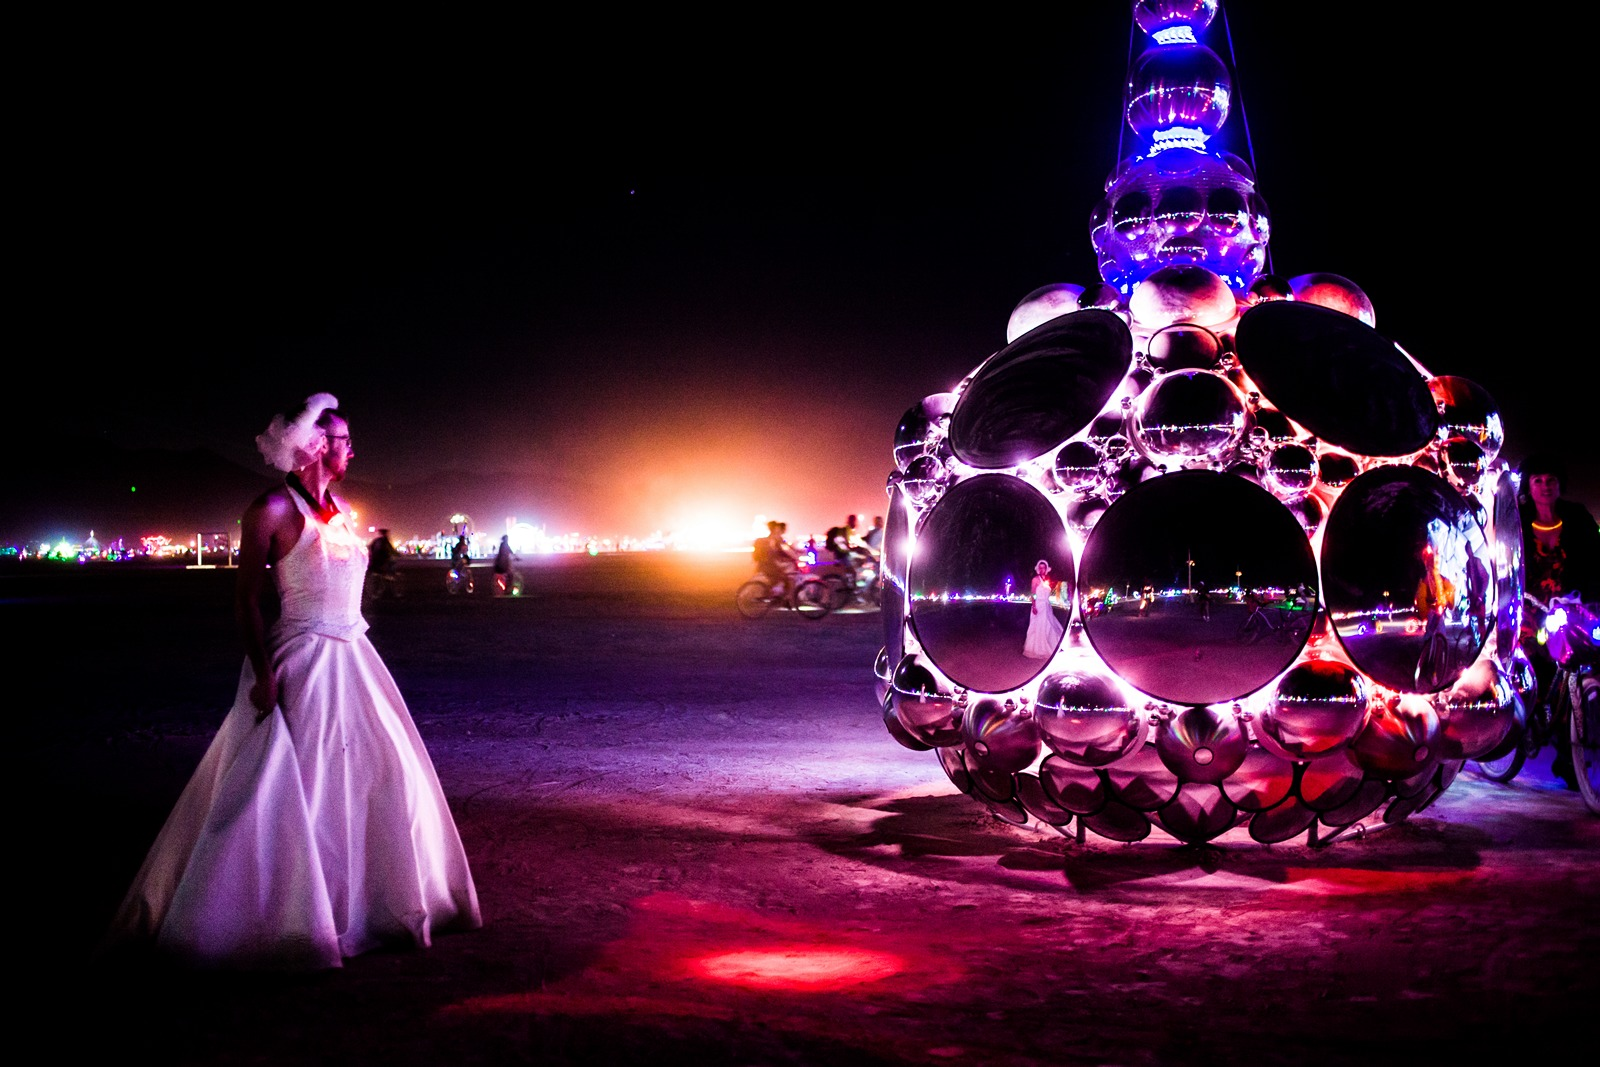 Burning Man - Marilyn